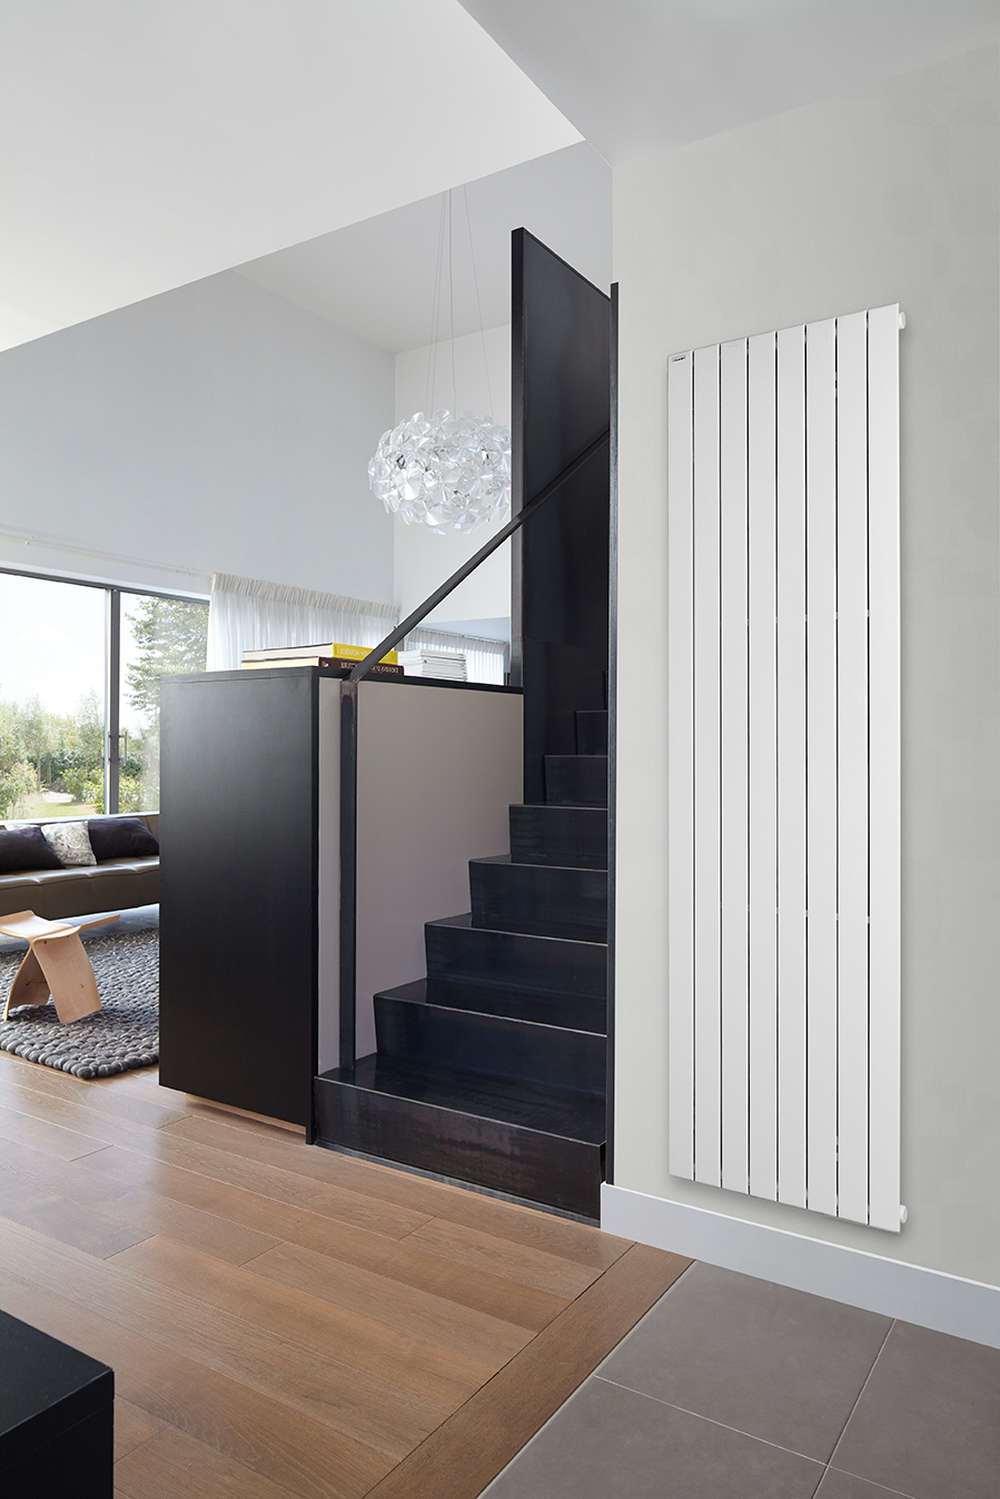 radiateur electrique vertical acova radiateur lectrique en mtal vertical fassane tmxp acova. Black Bedroom Furniture Sets. Home Design Ideas